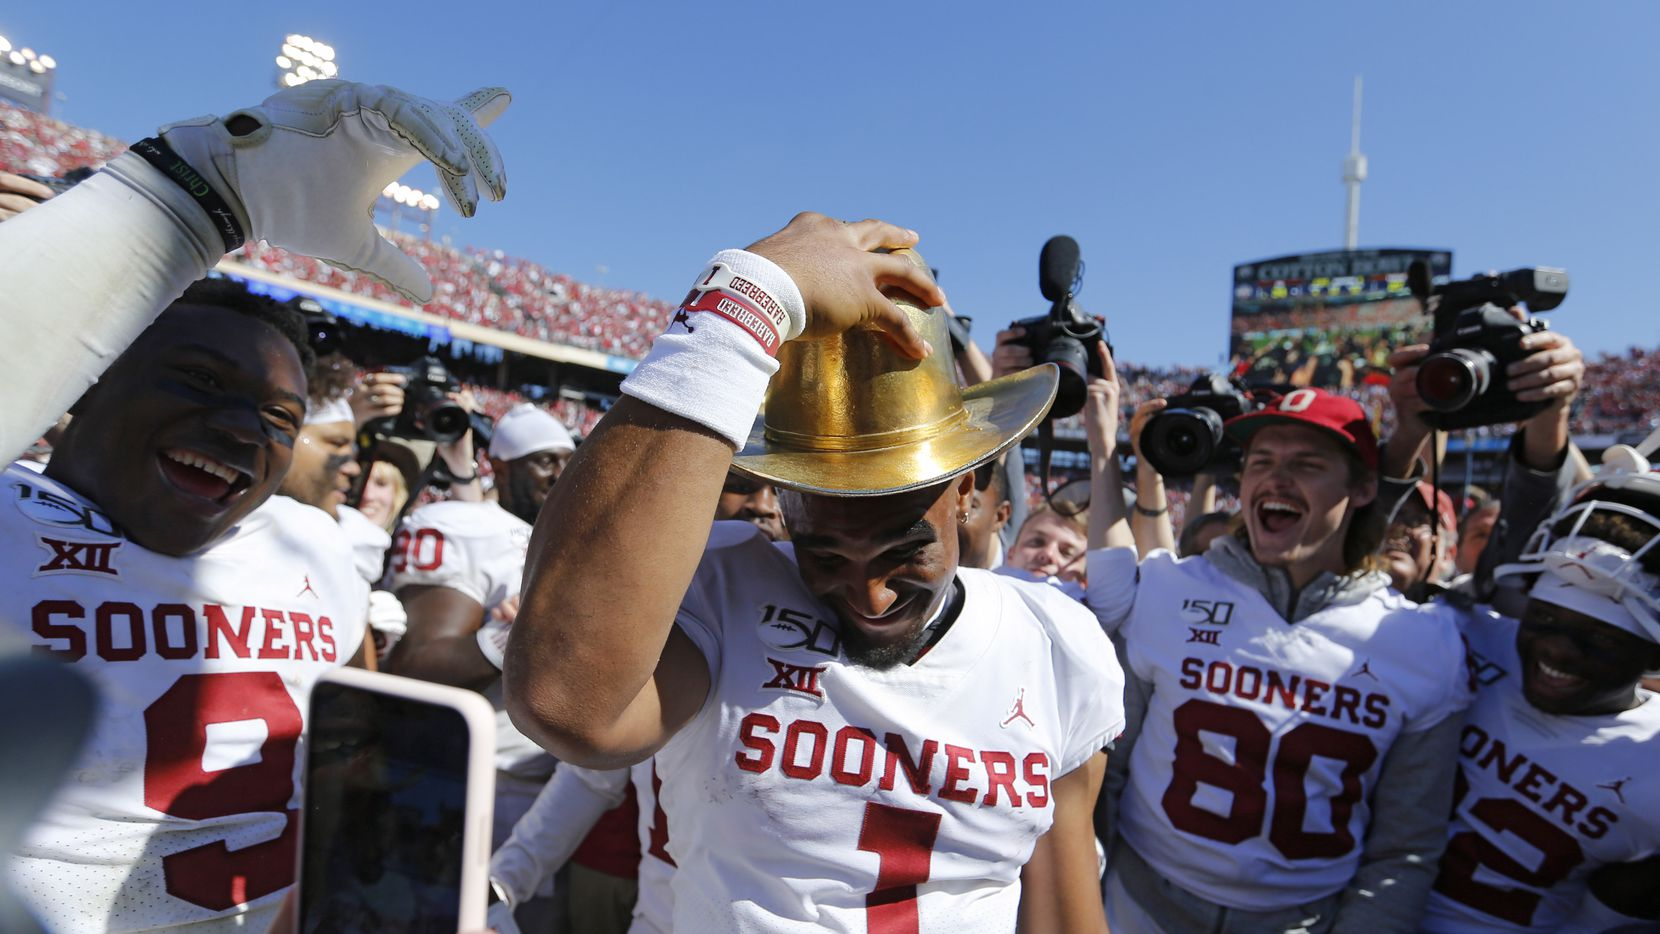 Oklahoma Sooners quarterback Jalen Hurts (1) tries on the Golden Hat as he celebrates with teammates after defeating Texas Longhorns 34-27 in the Red River Showdown at the Cotton Bowl in Dallas on Saturday, October 12, 2019.